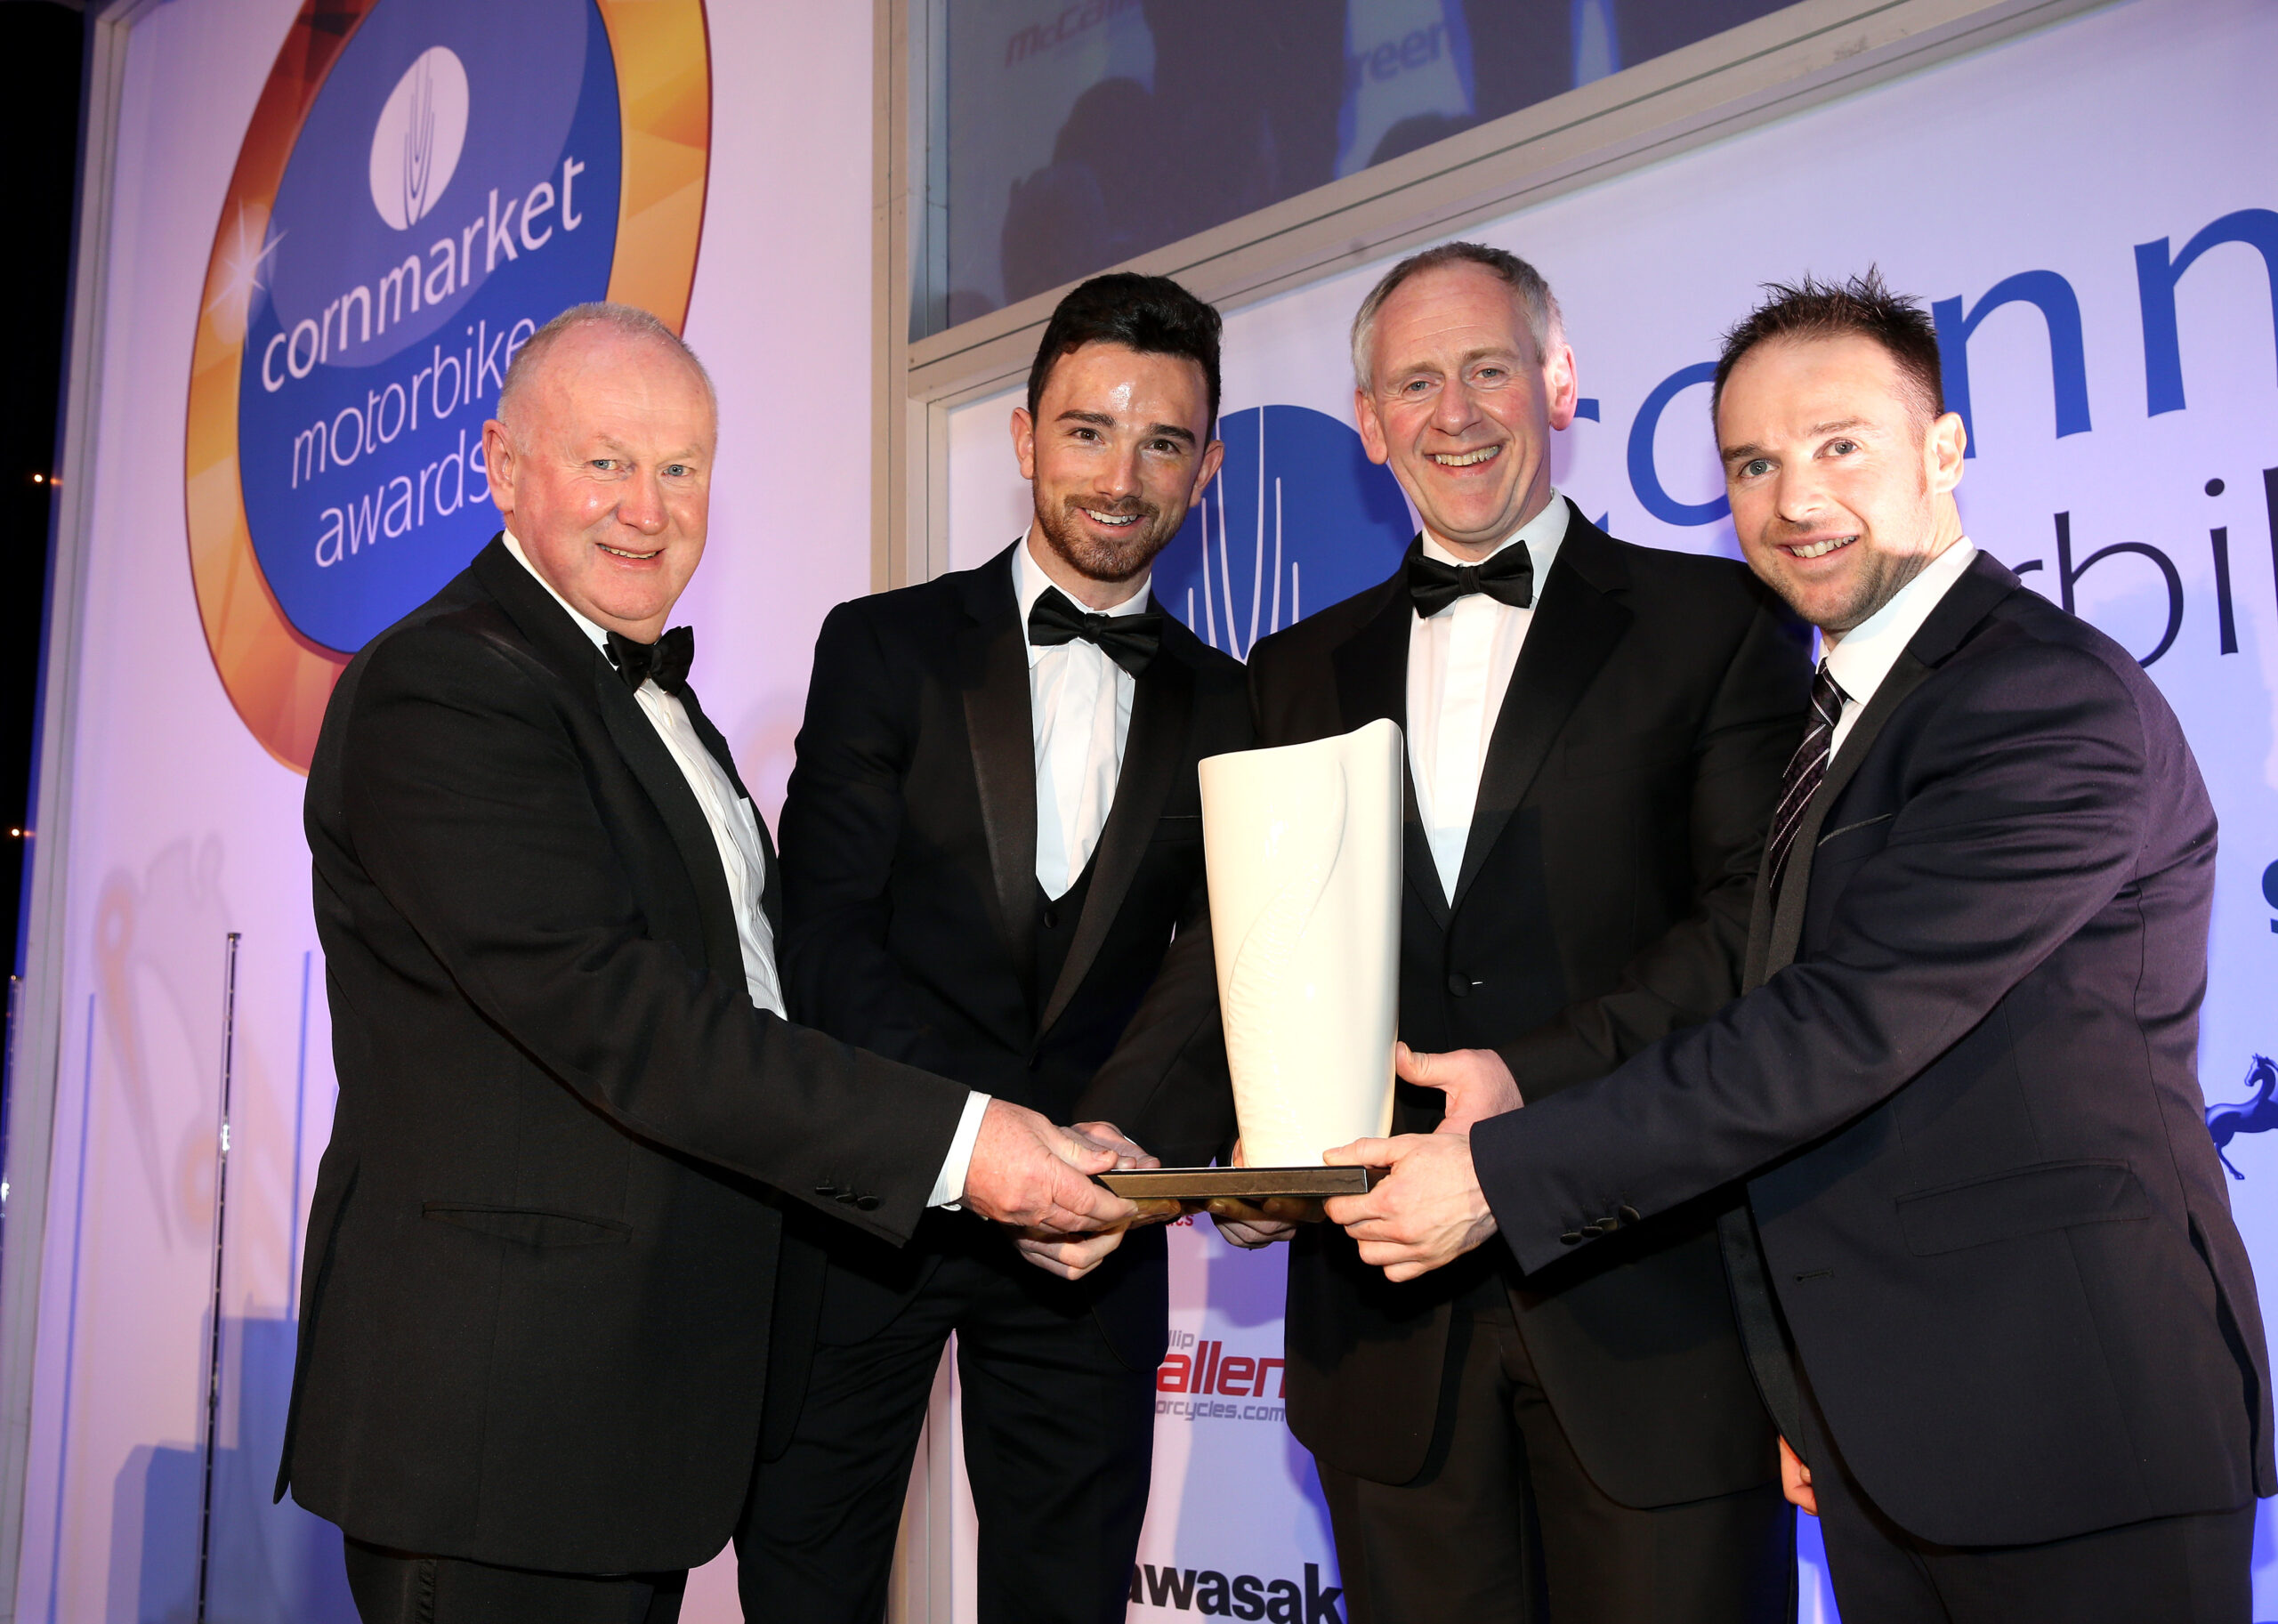 Feature NW200 Superbike Race Crowned Race Of The Year At Cornmarket Motorbike Awards Ceremony